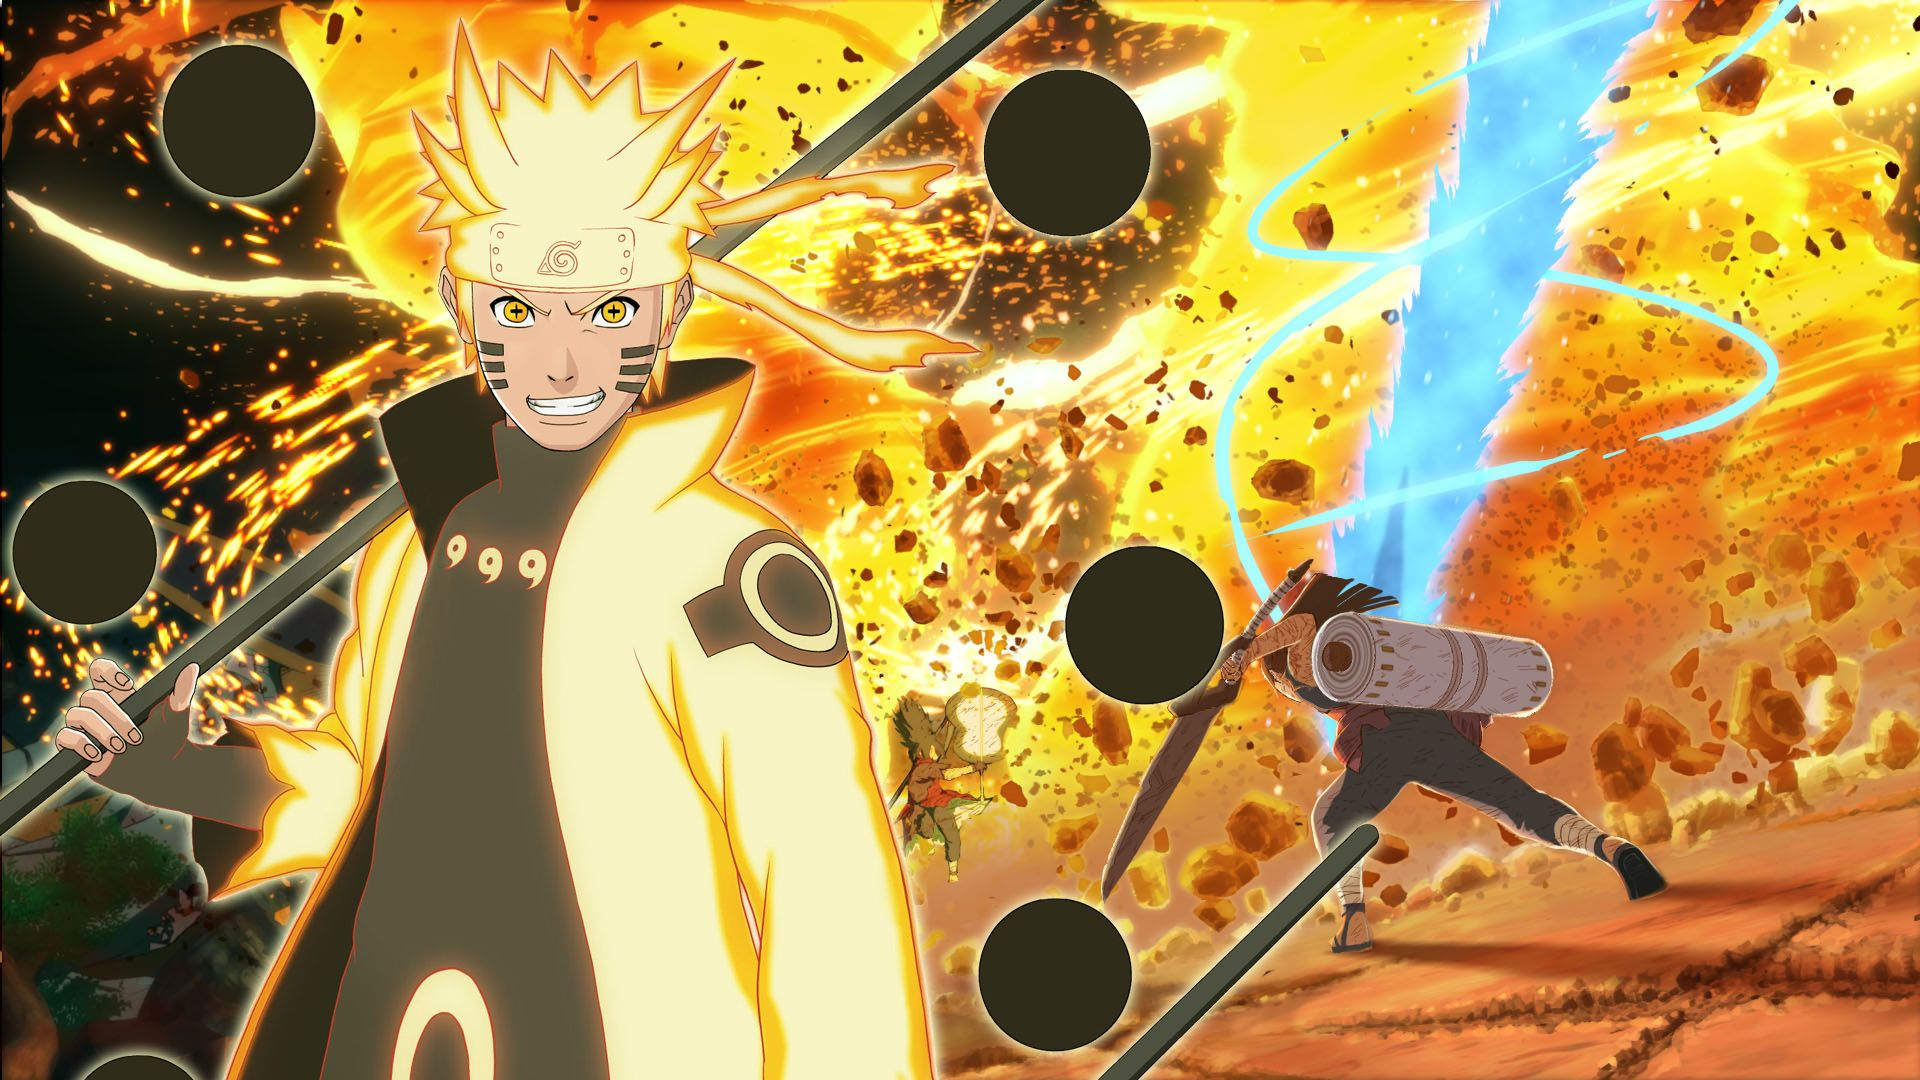 Naruto Shippuden Wallpapers Top Free Naruto Shippuden Backgrounds Wallpaperaccess